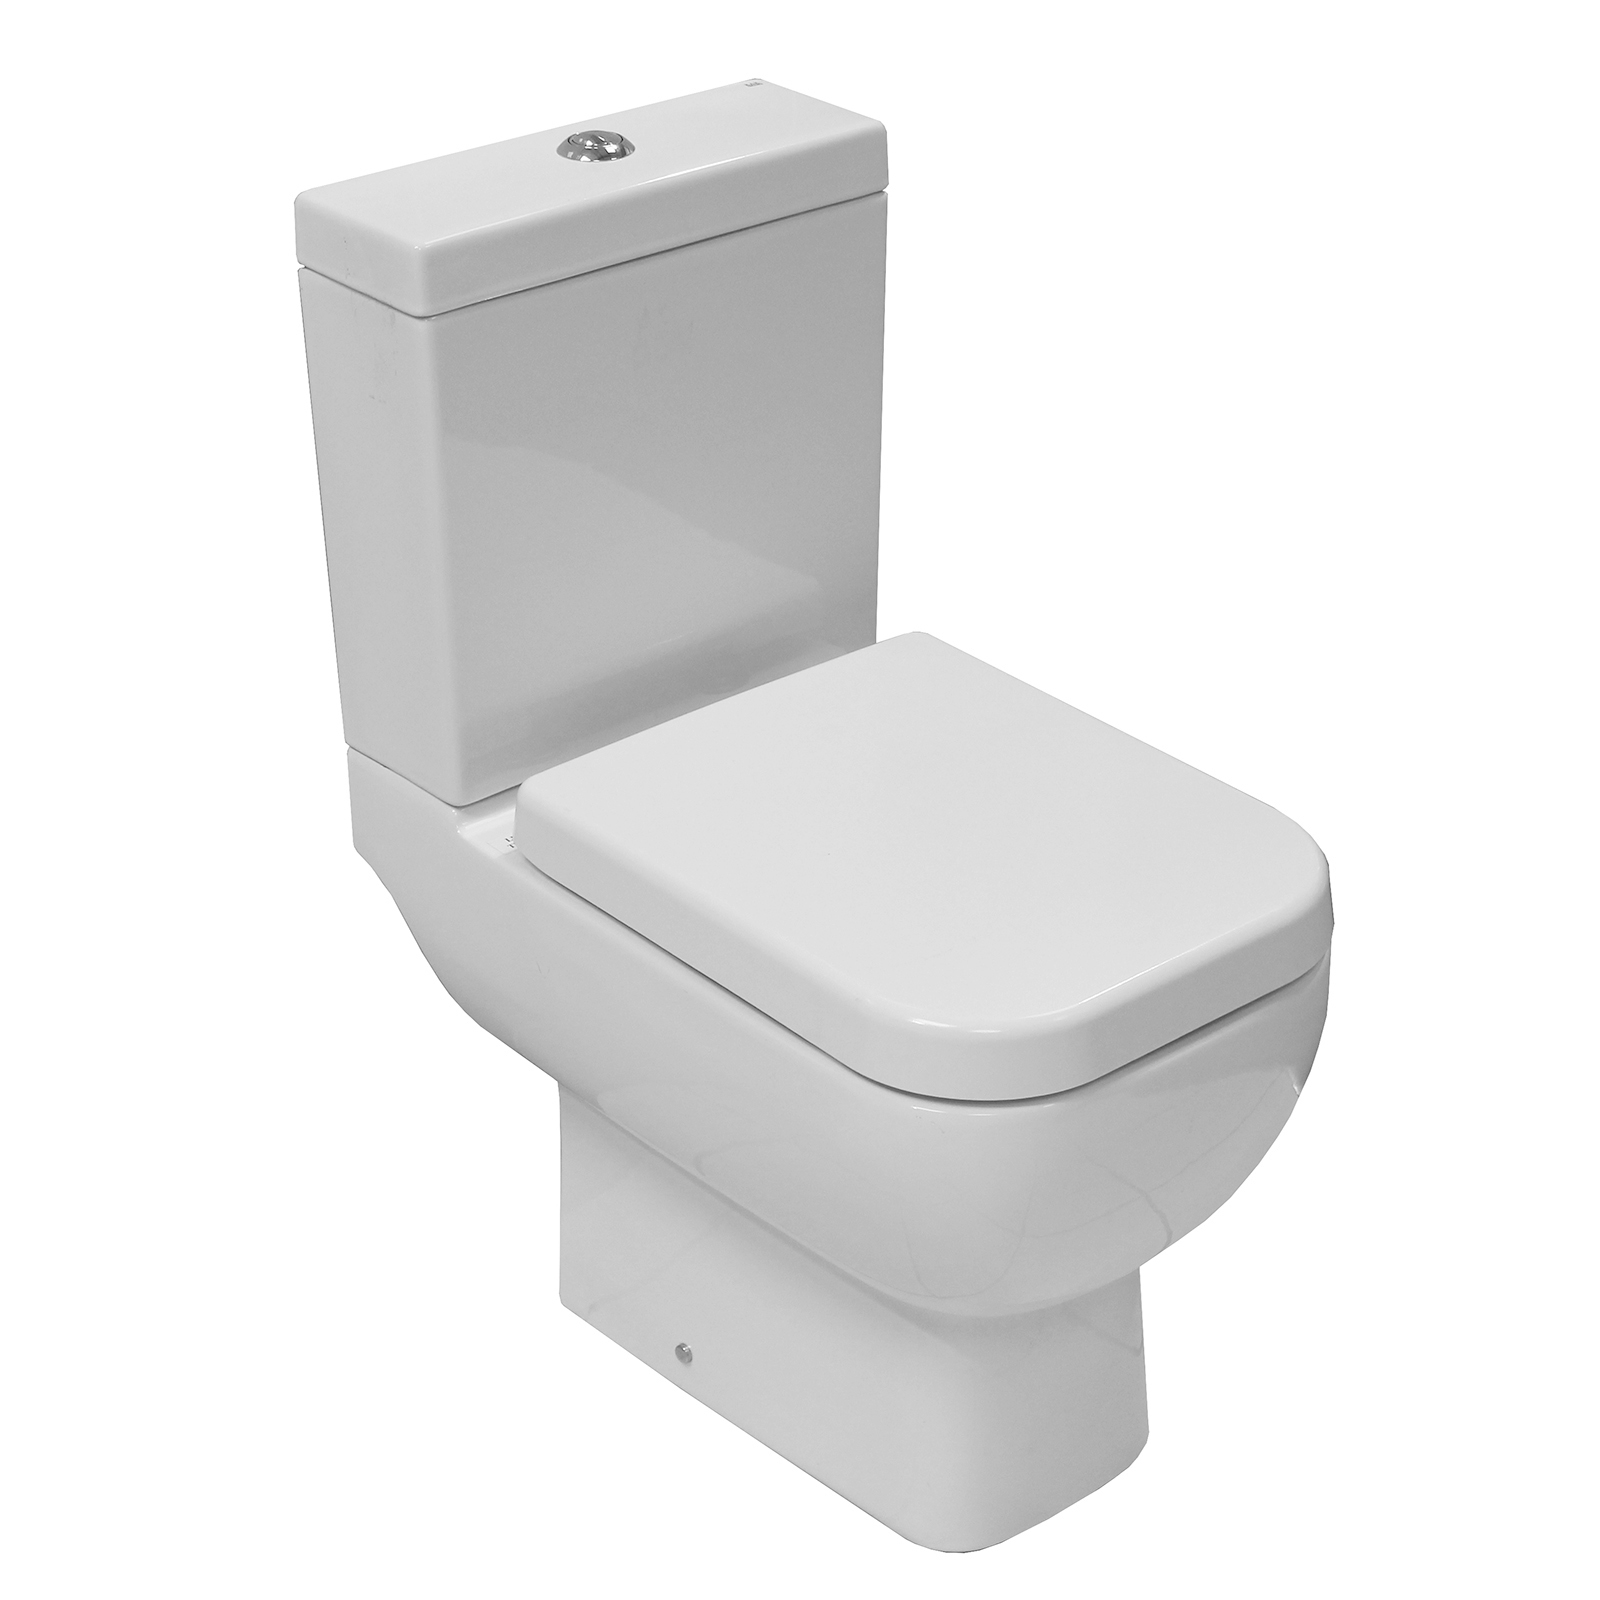 Rak Series 600 Close Coupled Wc Toilet 163 145 99 At Allbits